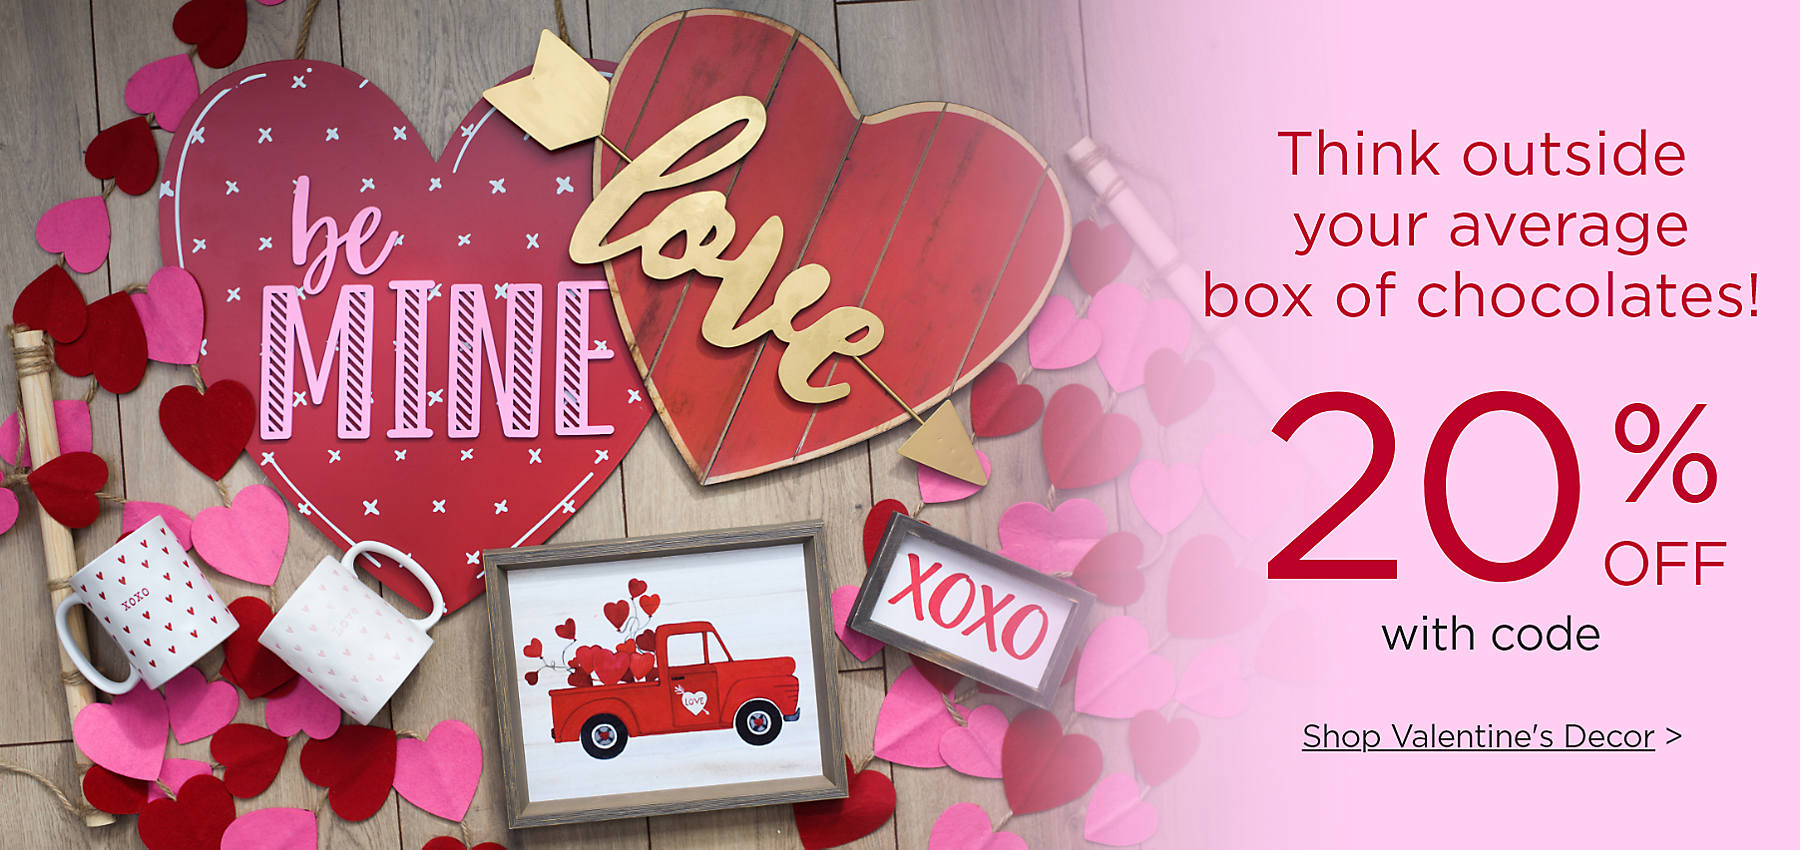 Think outside your average box of chocolates! 20% off with code Shop Valentine's Decor